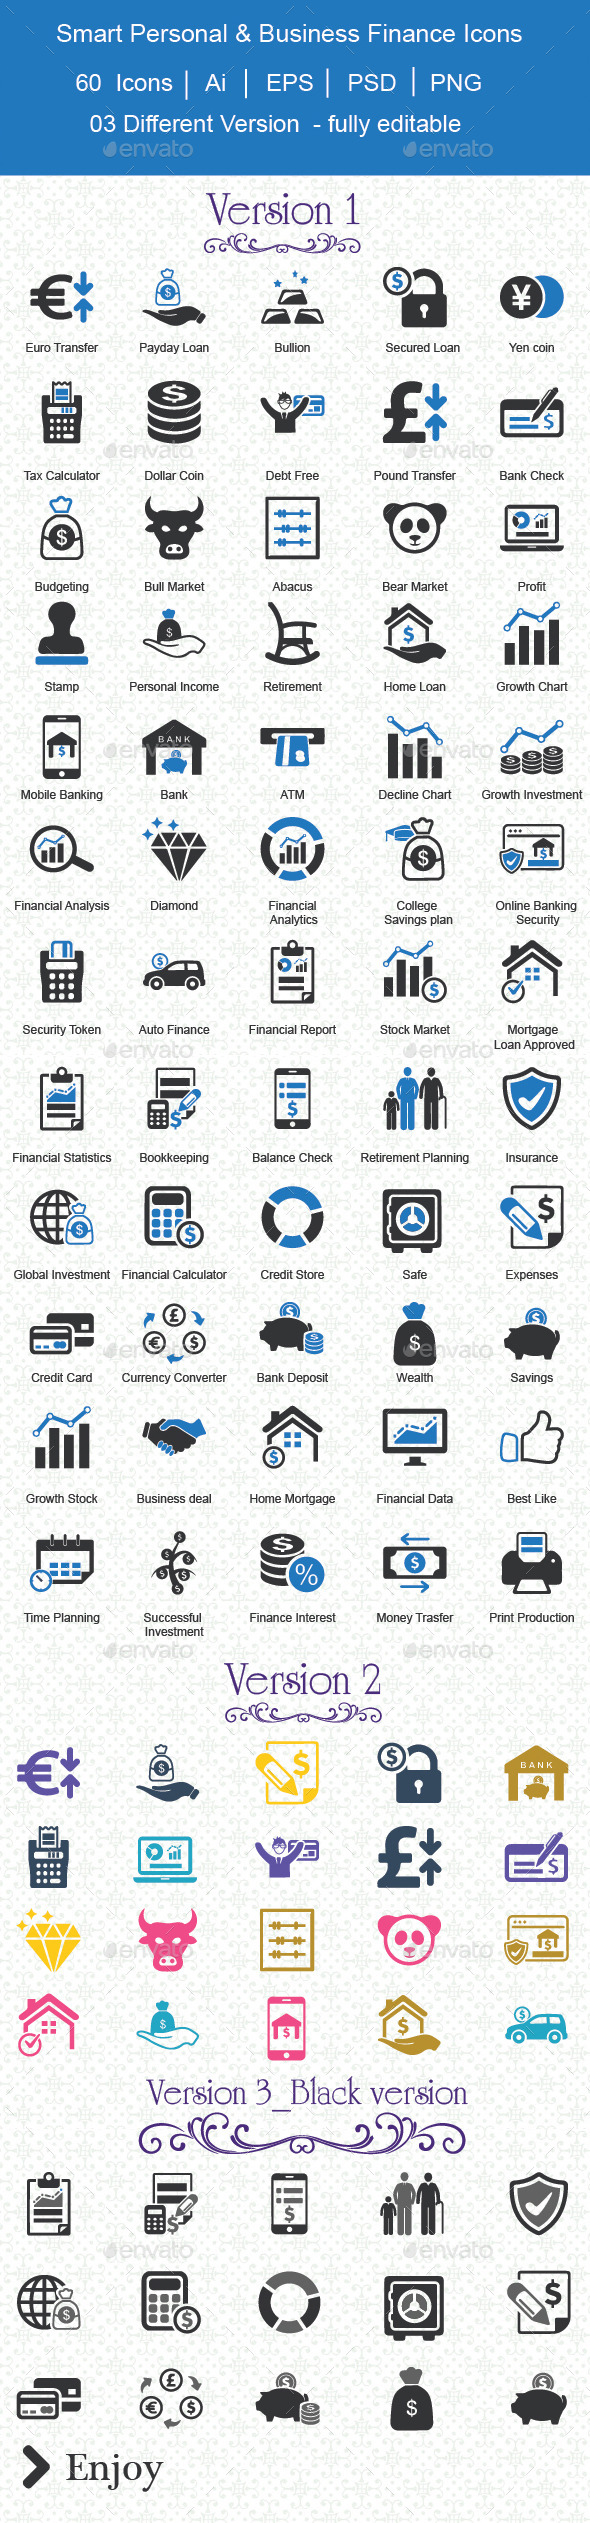 Smart Personal & Business Finance Icons